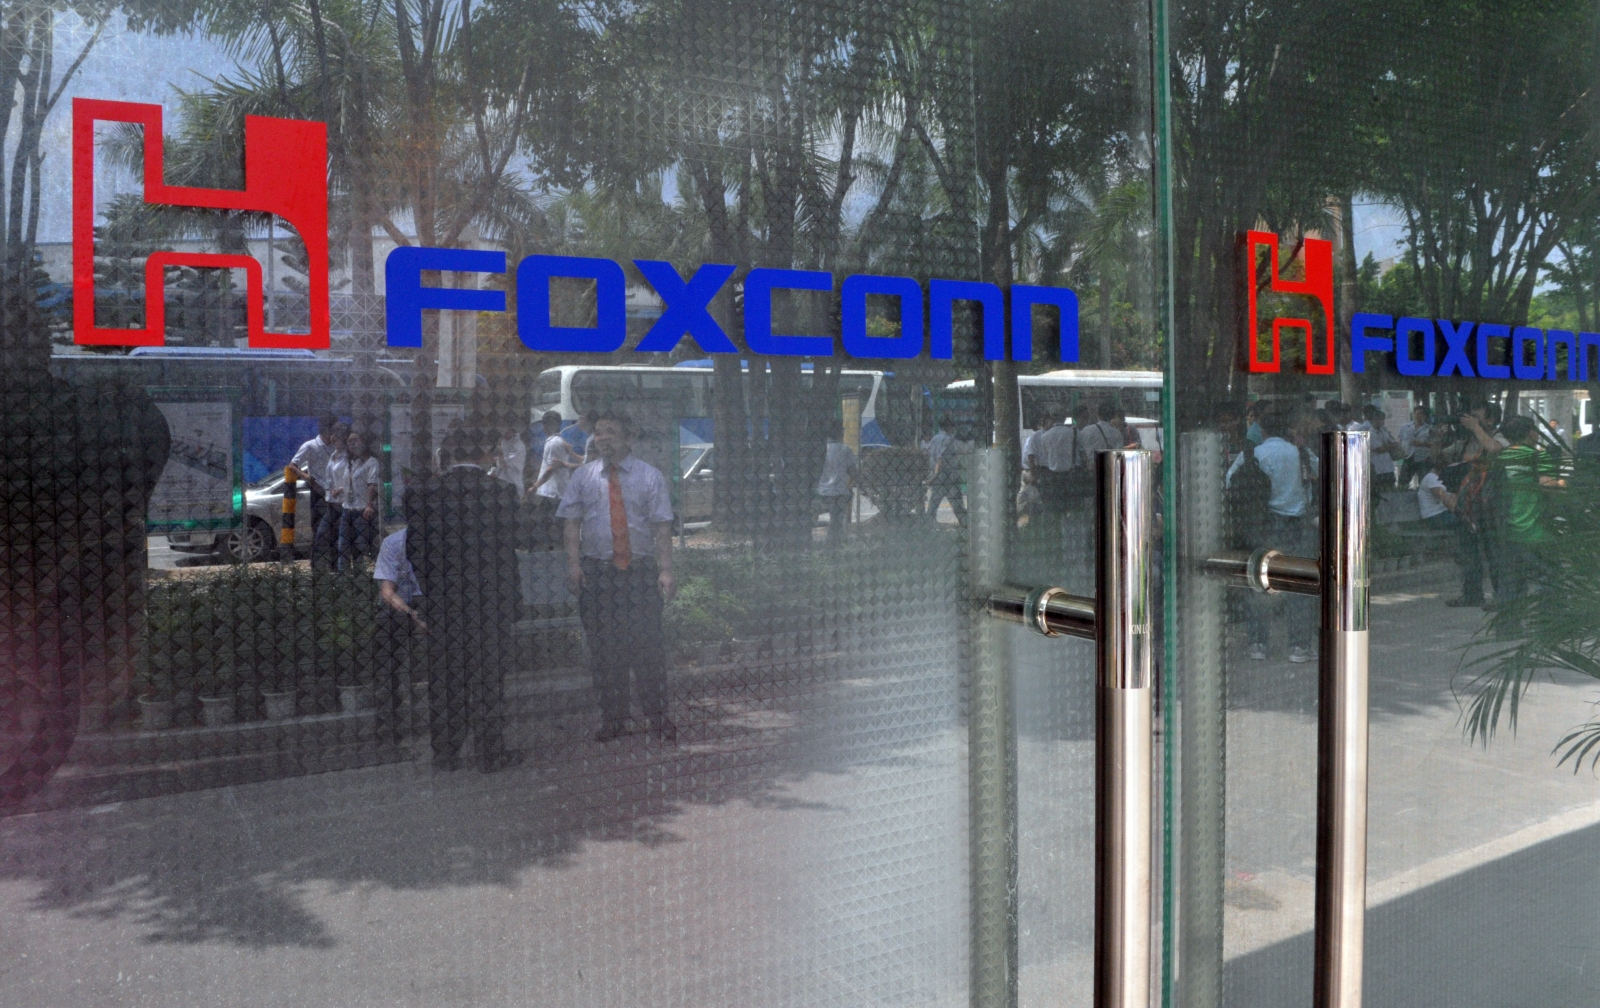 Apple supplier Foxconn considering $7bn investment in US for a display facility